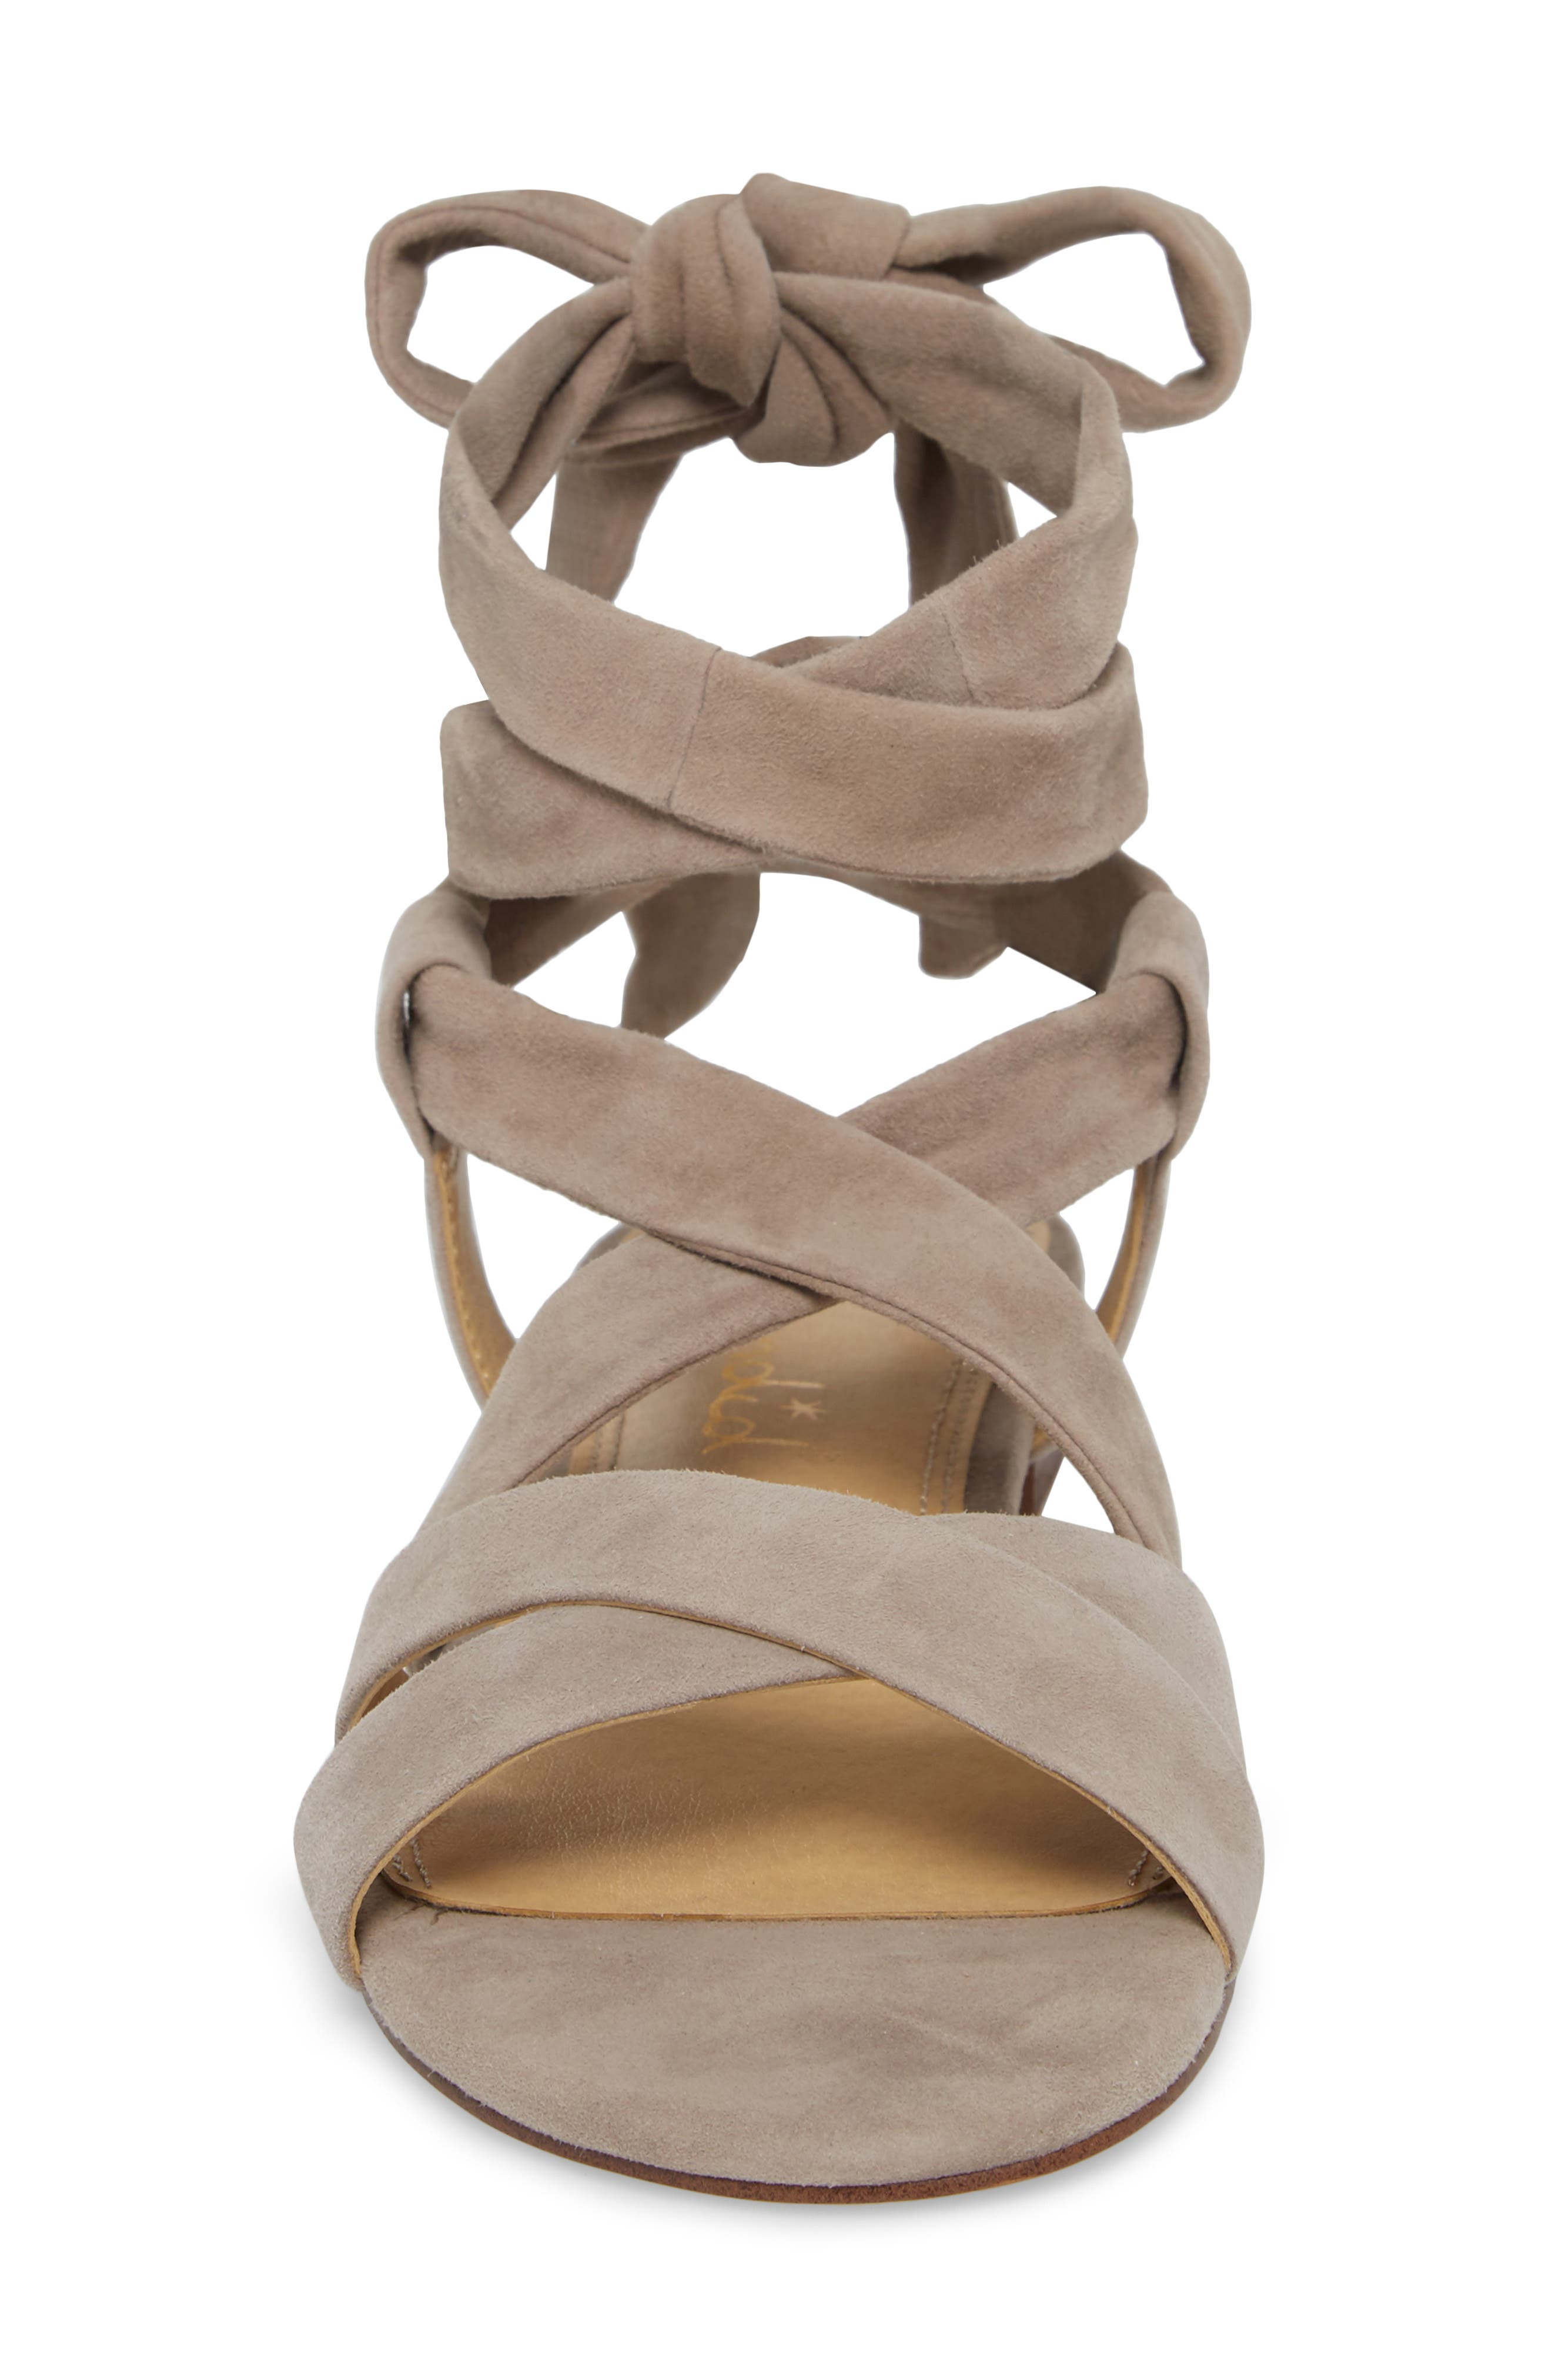 Feodora Ankle Wrap Sandal,                             Alternate thumbnail 4, color,                             TAUPE SUEDE